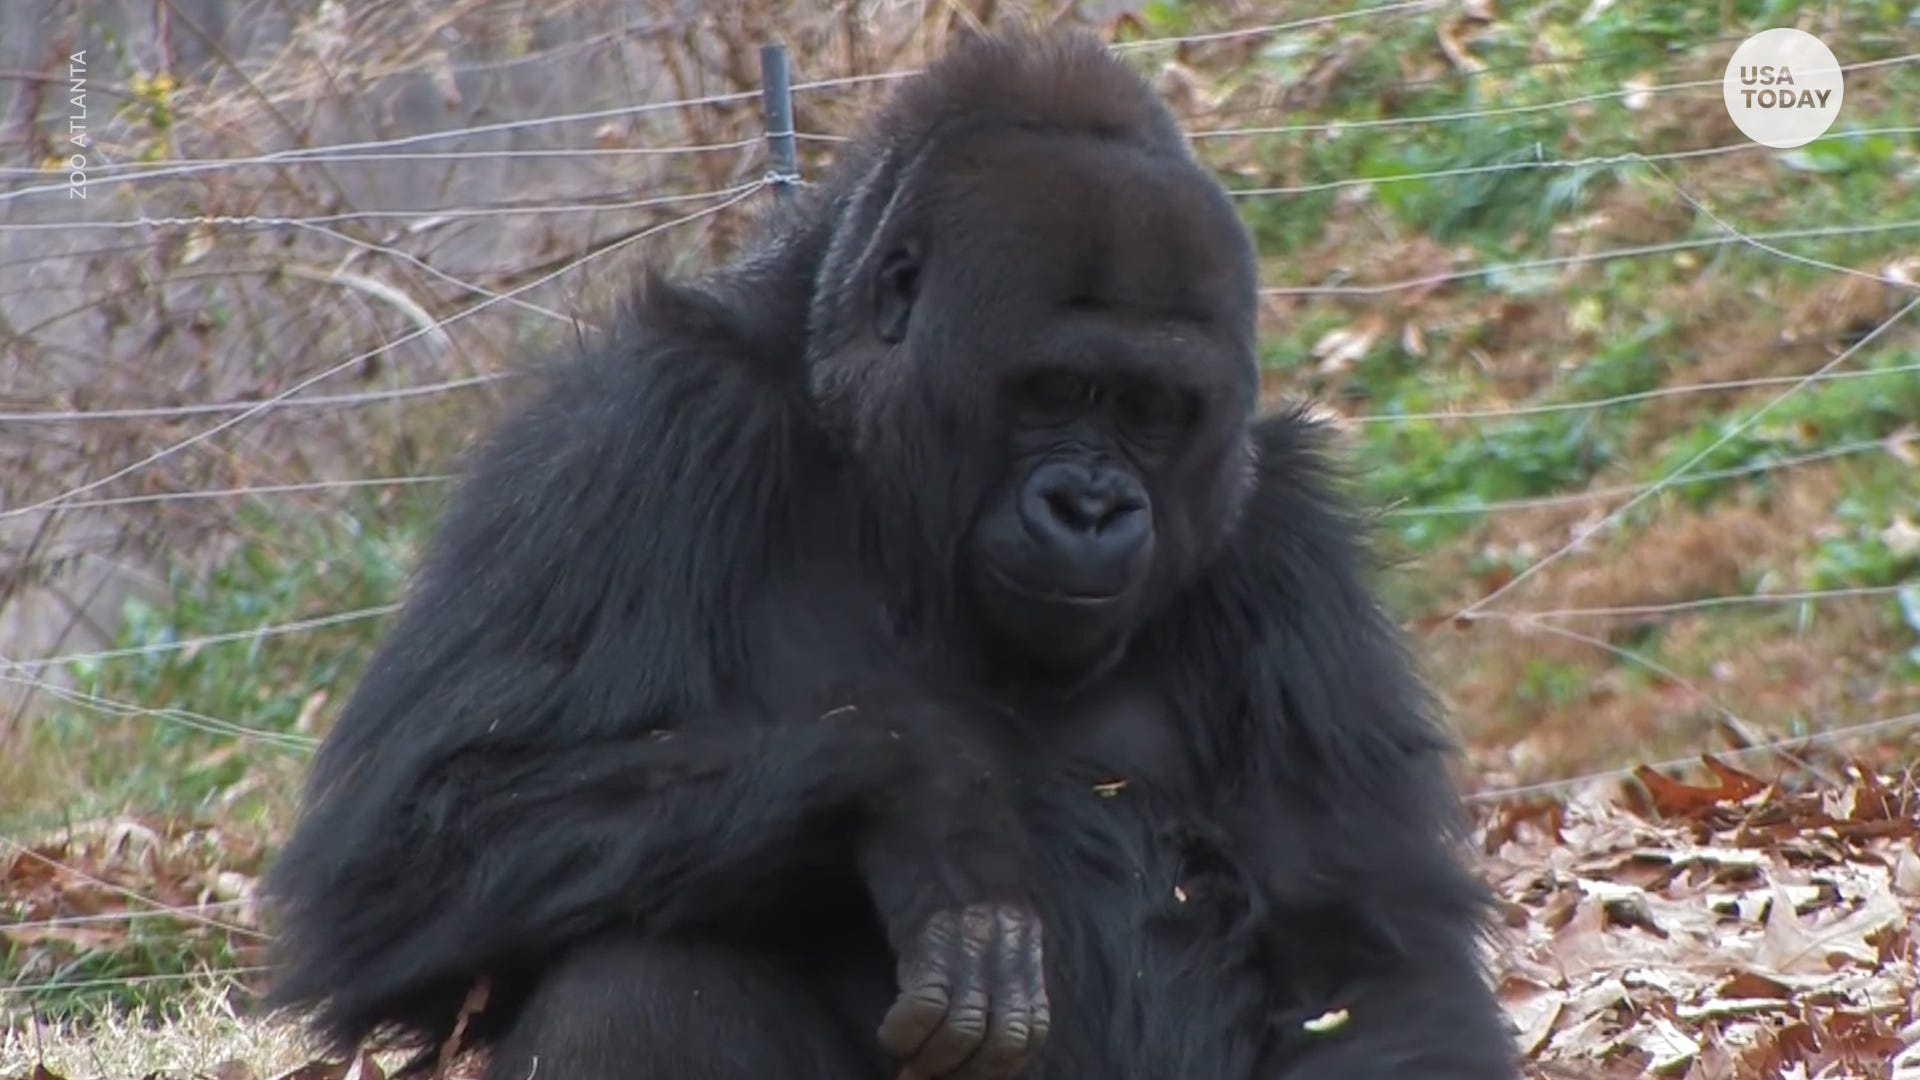 Gorillas at Atlanta Zoo to be vaccinated after testing positive for COVID-19